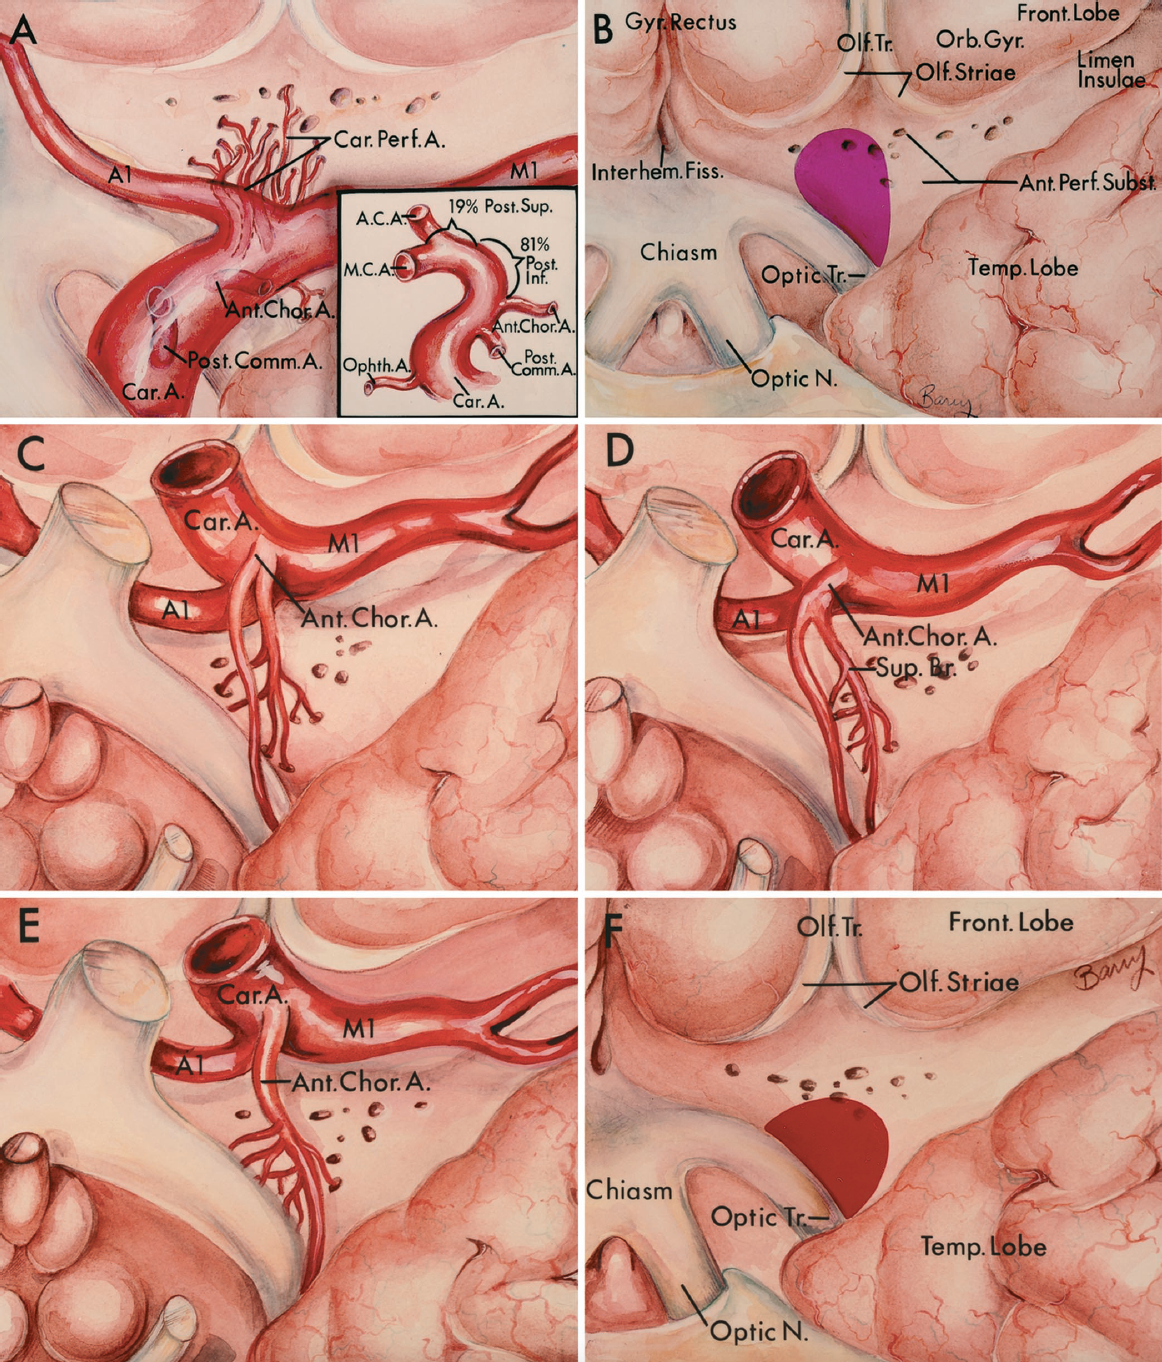 FIGURE 2.30A–F. A, arteries entering the anterior perforated substance. The internal carotid, anterior and middle cerebral, anterior choroidal, and recurrent arteries send branches to the anterior perforated substance. The carotid branches arise distal to the origin of the anterior choroidal artery, well above the origin of the ophthalmic and posterior communicating arteries. The middle cerebral branches arise from the M1 and M2 segments. The anterior cerebral branches, including the recurrent arteries, arise from the A1 and A2 segments. The anterior perforated substance extends medially above the optic chiasm to the interhemispheric fissure, laterally to the limen insulae, anteriorly to the olfactory striae, and posteriorly to the optic tract and temporal lobe. The olfactory tract courses along the inferior surface of the frontal lobe at the junction of the gyrus rectus and the orbital gyri. A and B, internal carotid artery. A, the branches from the internal carotid artery to the anterior perforated substance arise from the posterior wall above the anterior choroidal artery, and course upward behind the carotid bifurcation. Inset: lateral view of the carotid artery. Eighty-one percent of the branches to the anterior perforated substance arise from the posterior wall below the bifurcation and 18% arise from the posterosuperior surface of the wall, at or near the level of the bifurcation. B, internal carotid zone and territory in the anterior perforated substance. Most of the branches of the internal carotid artery enter the posterior and middle zones of the medial territory of the anterior perforated substance. C–F, anterior choroidal artery. Inferior views showing three patterns of origin (C–E). C, a branch to the anterior perforated substance arises in common with the origin of the anterior choroidal artery. D, the superior branch of the anterior choroidal artery gives rise to branches to the anterior perforated substance. E, the main trunk of the anterior choroid